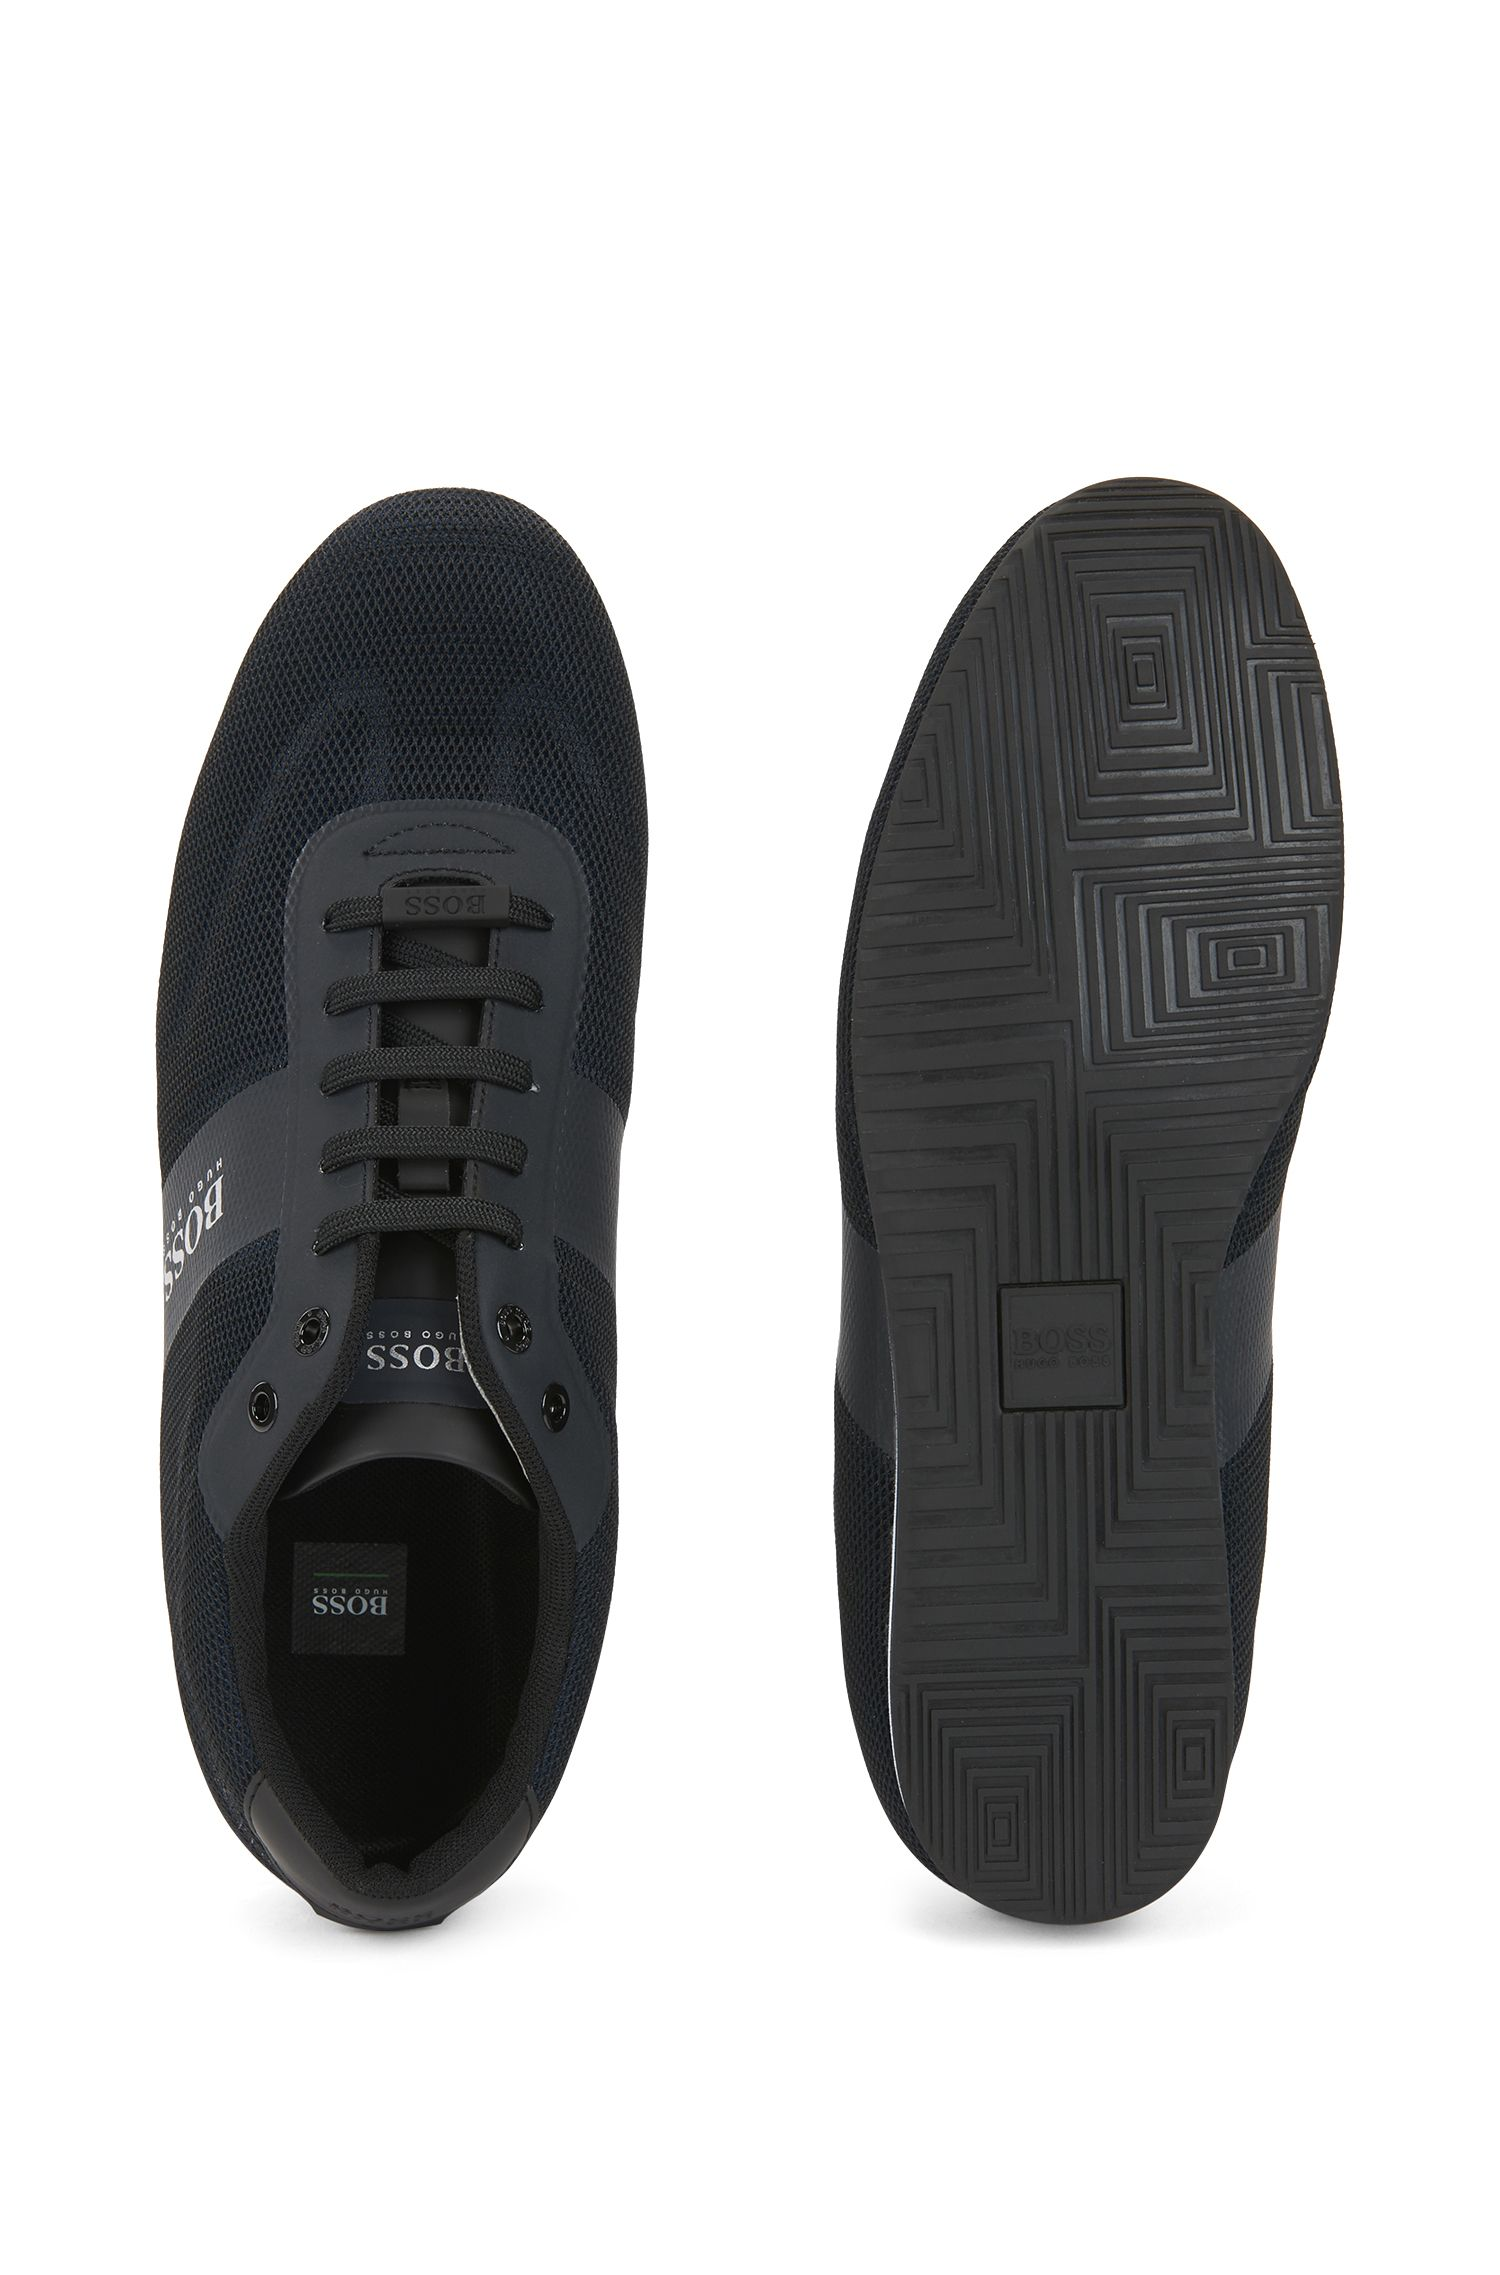 Low-top sneakers with one-piece mesh uppers